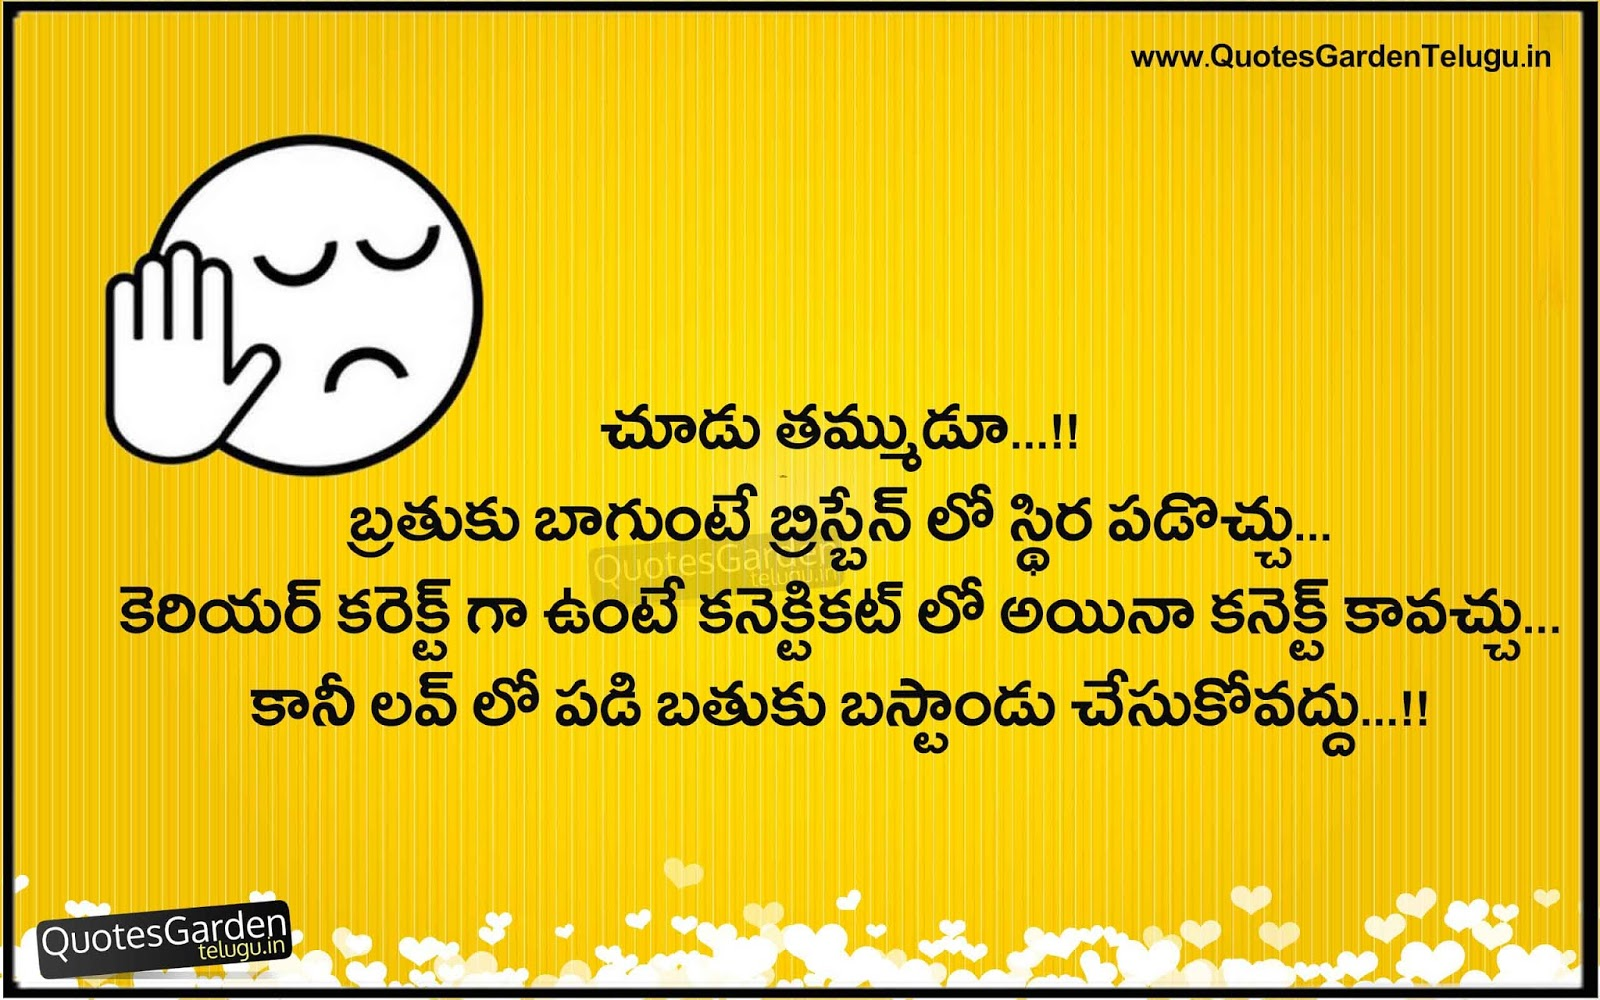 Telugu Funny Love Quotes Thousands Of Inspiration Quotes About